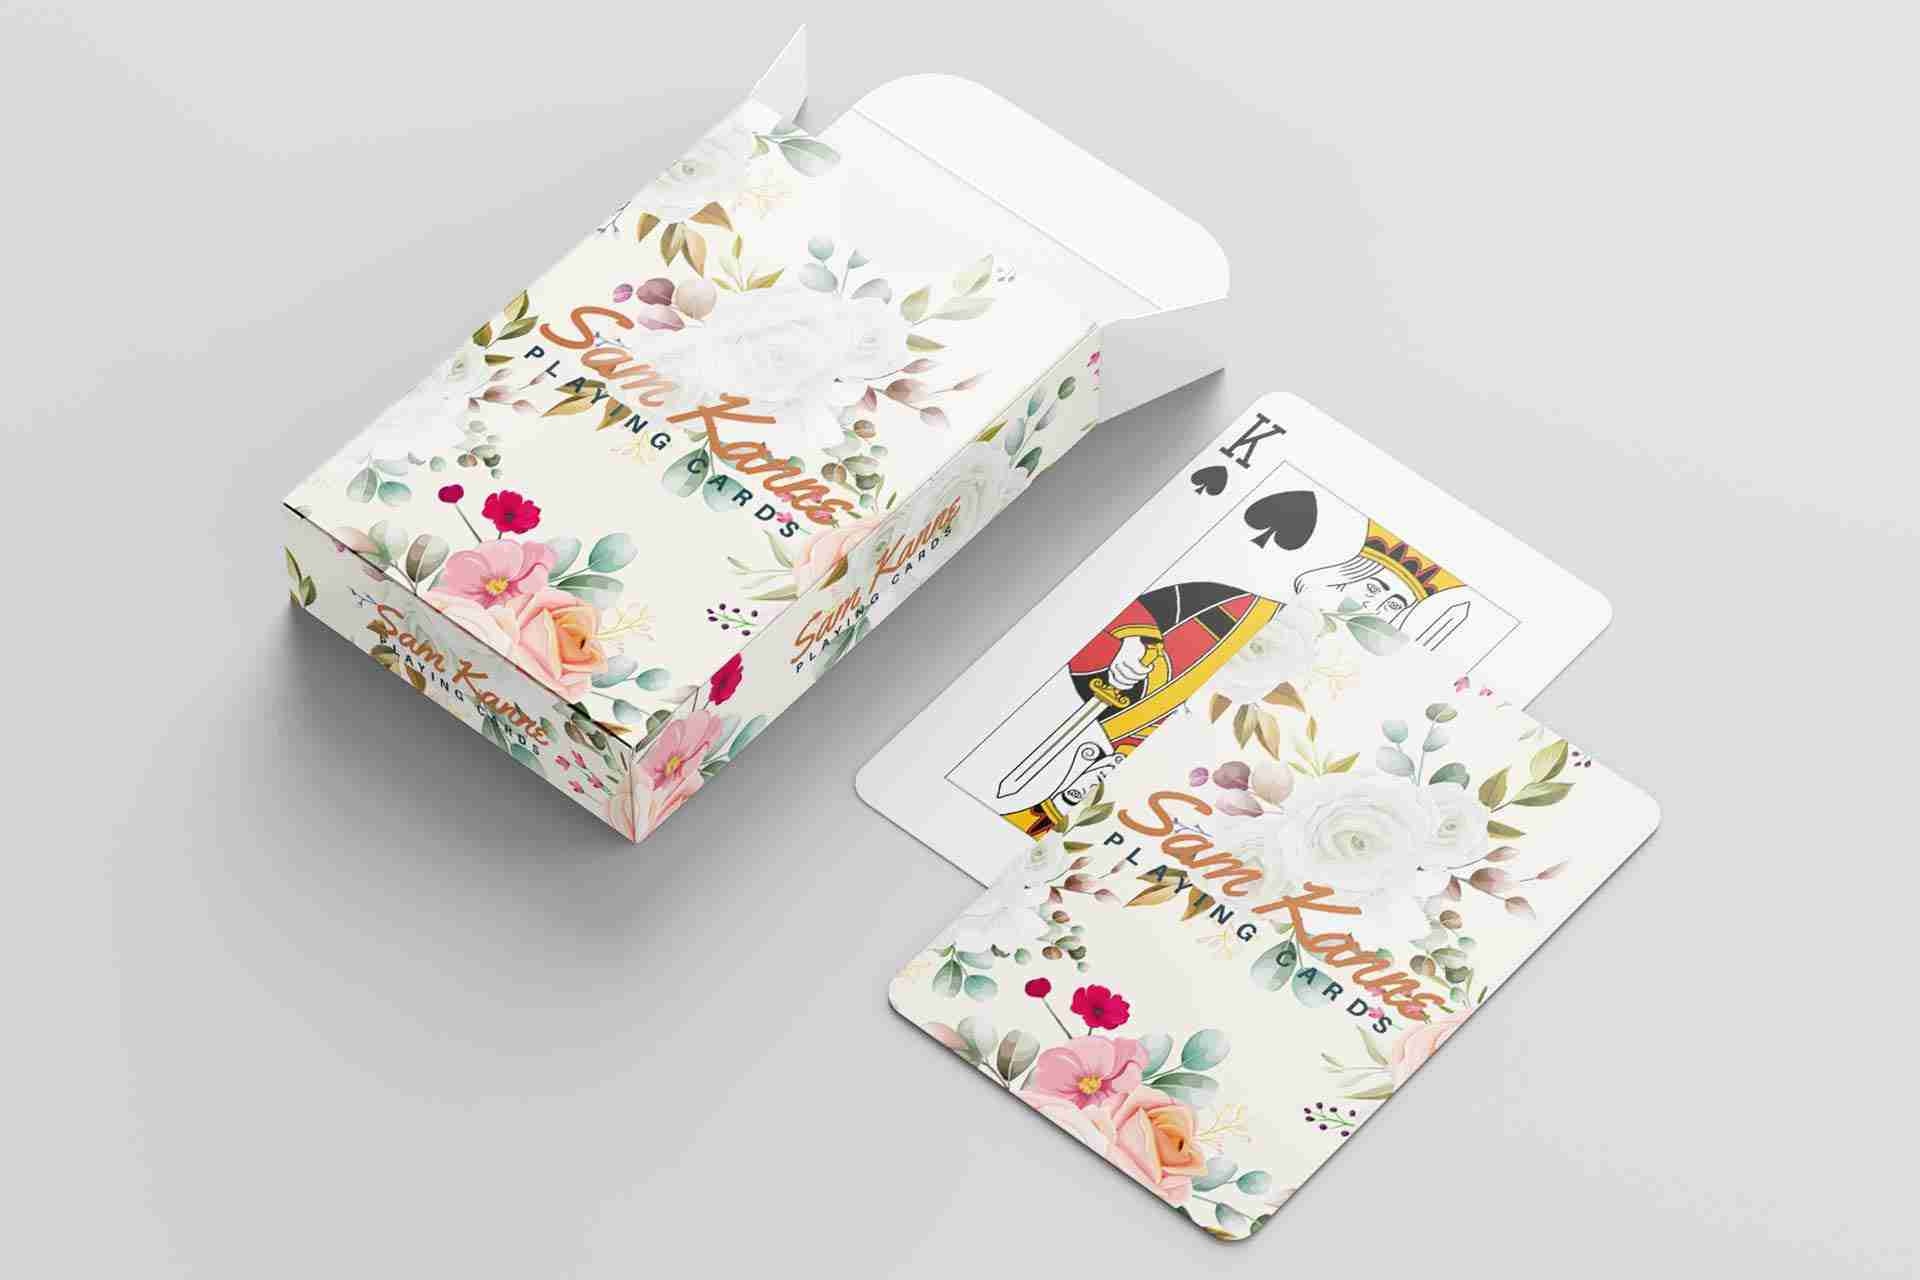 Playing-Cards-Design-Option-1-3